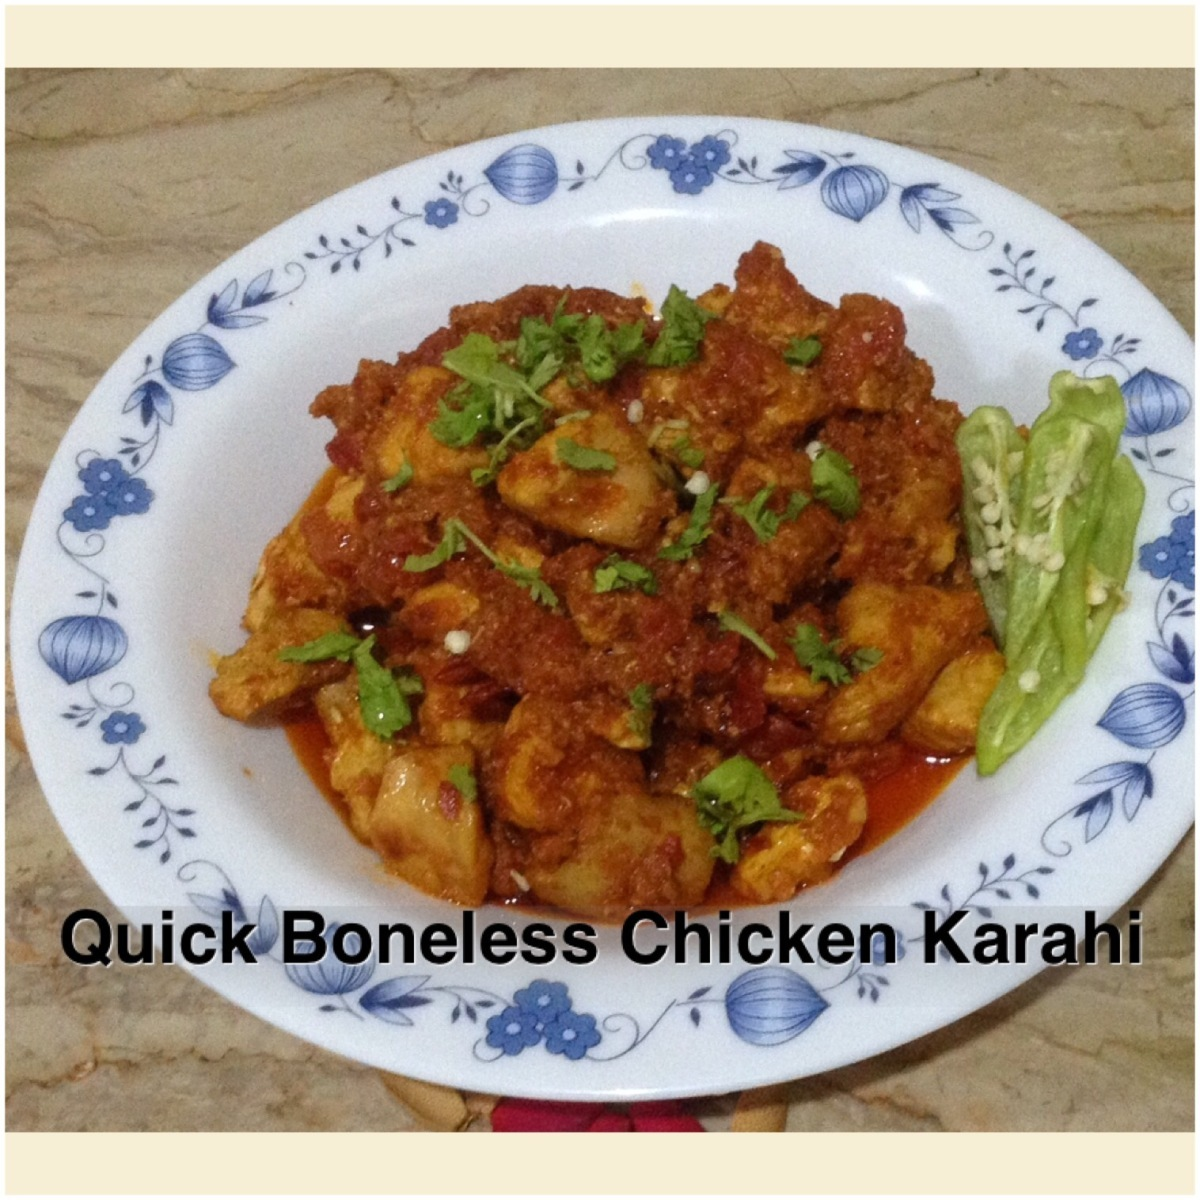 Quick boneless chicken Karahi